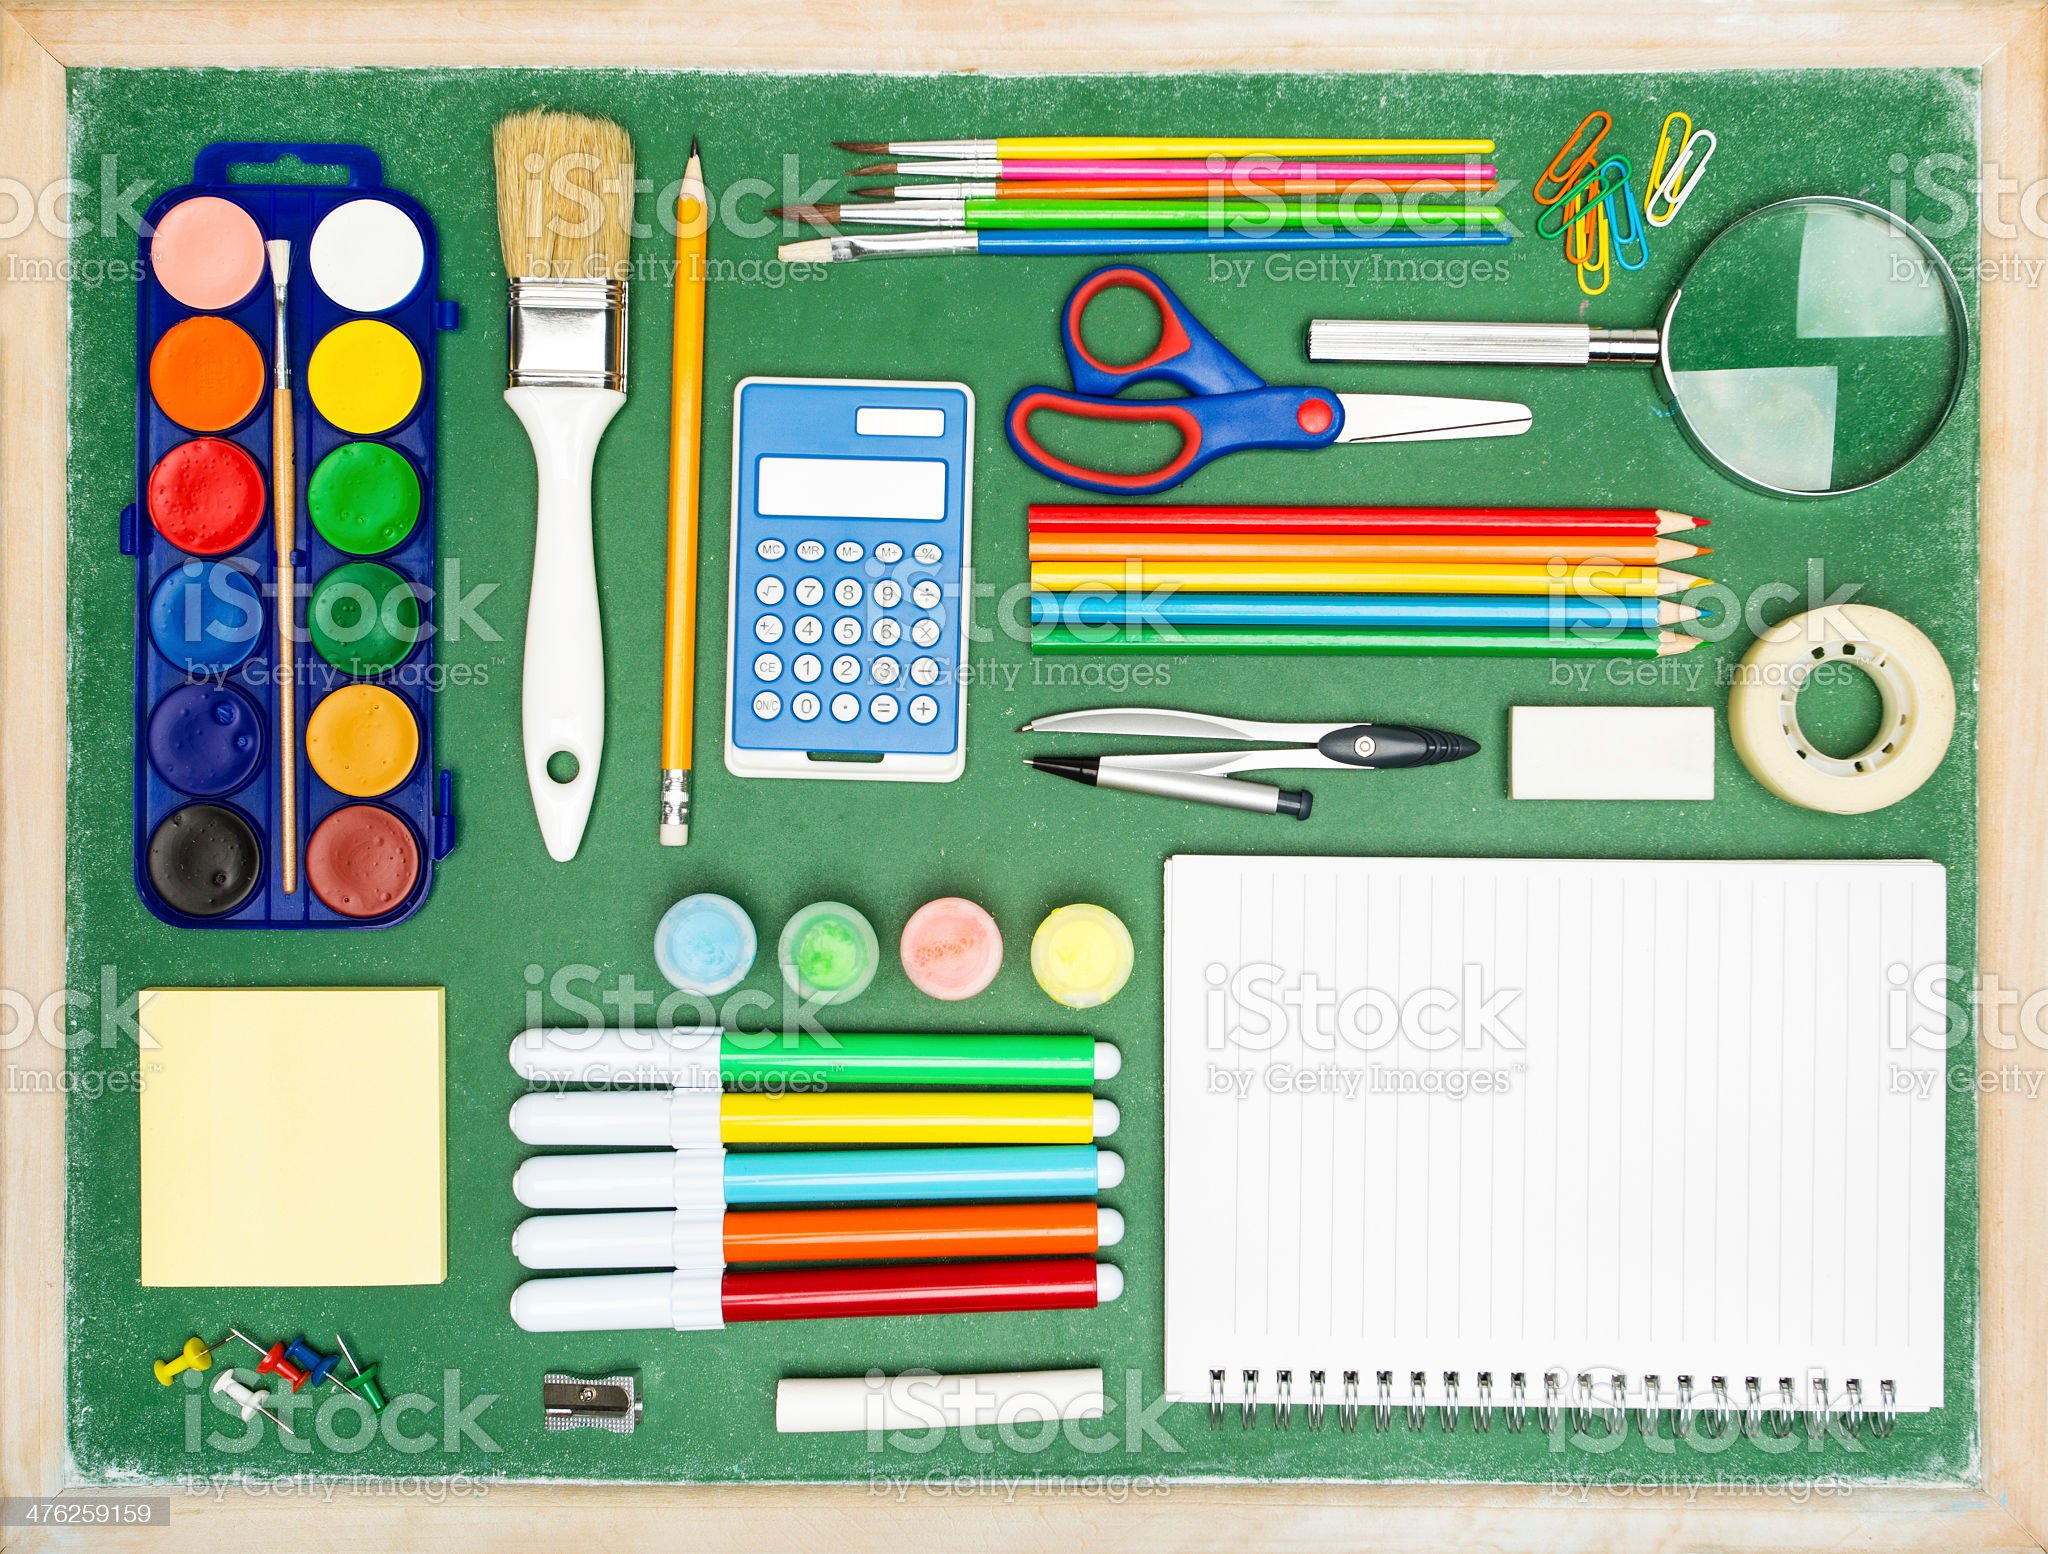 Collection of various office and school supplies royalty-free stock photo